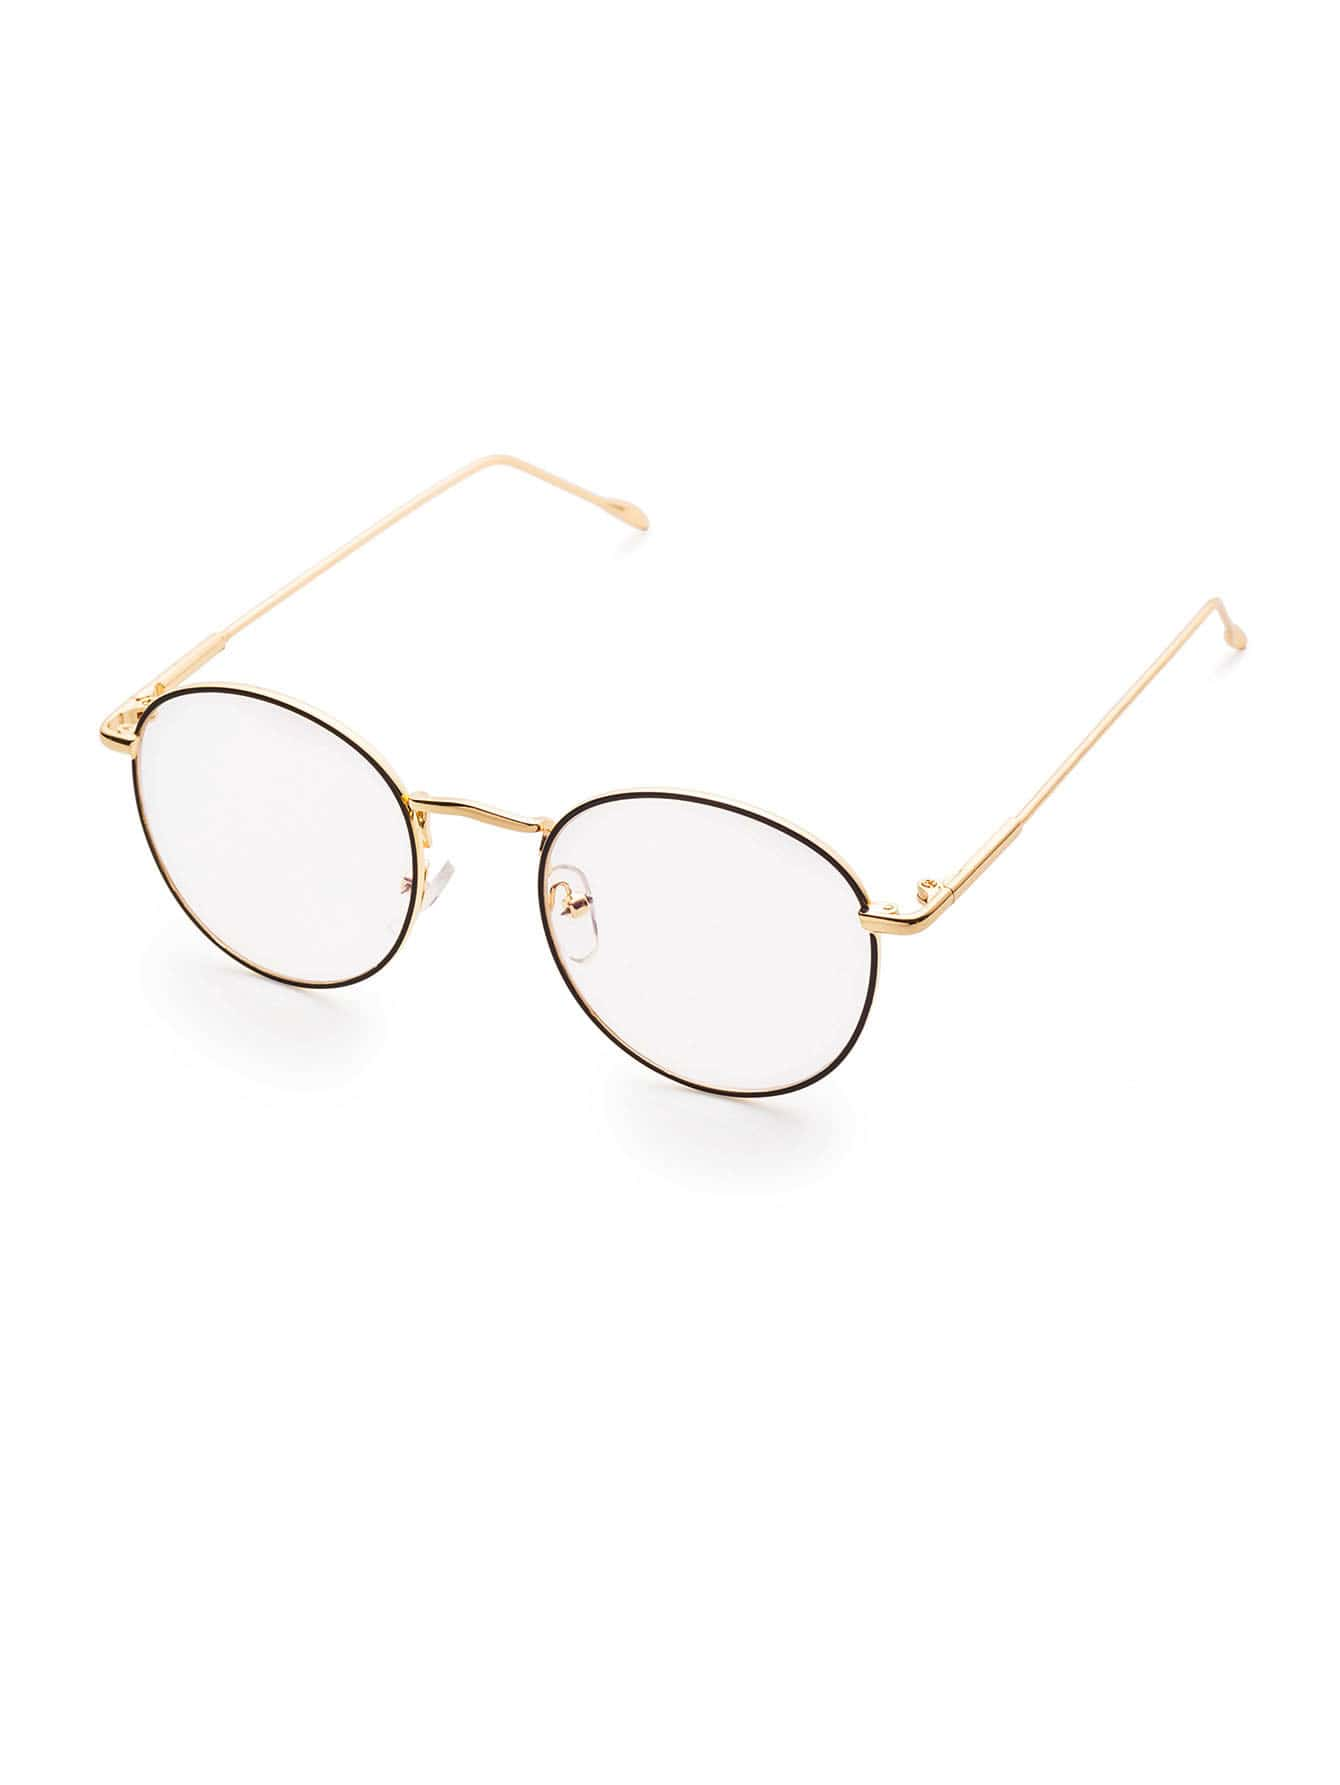 gold frame clear lens glasses sunglass170308303_1 sunglass170308303_1 sunglass170308303_2 sunglass170308303_2